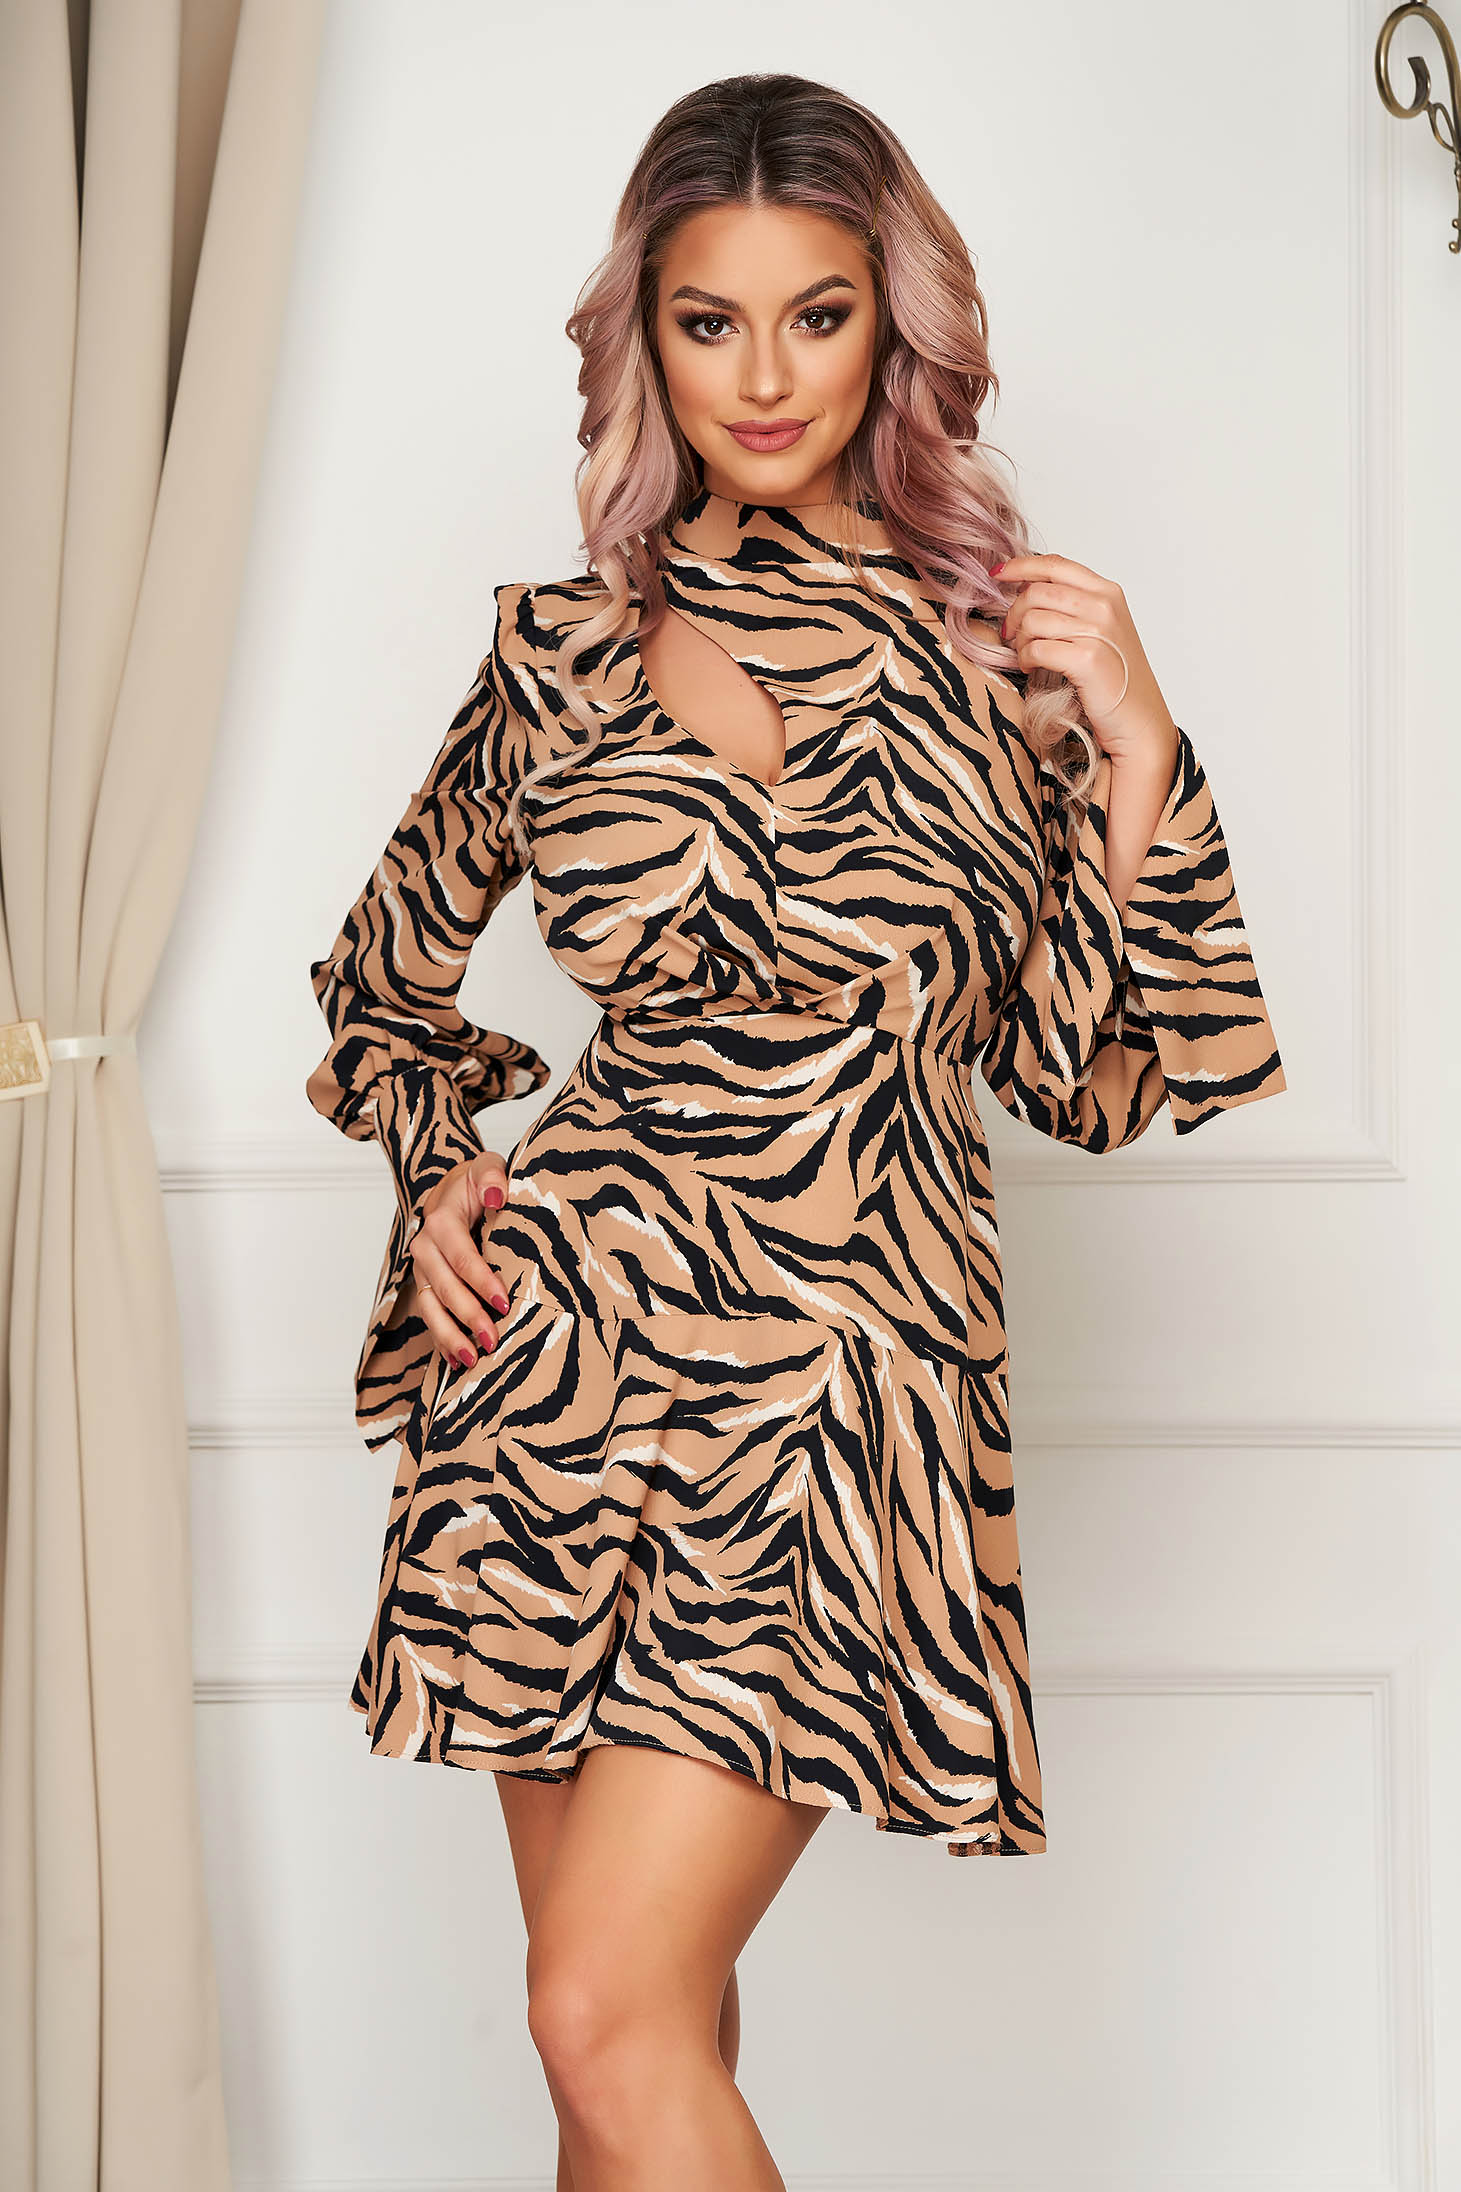 Brown dress daily a-line voile fabric animal print cut-out bust design